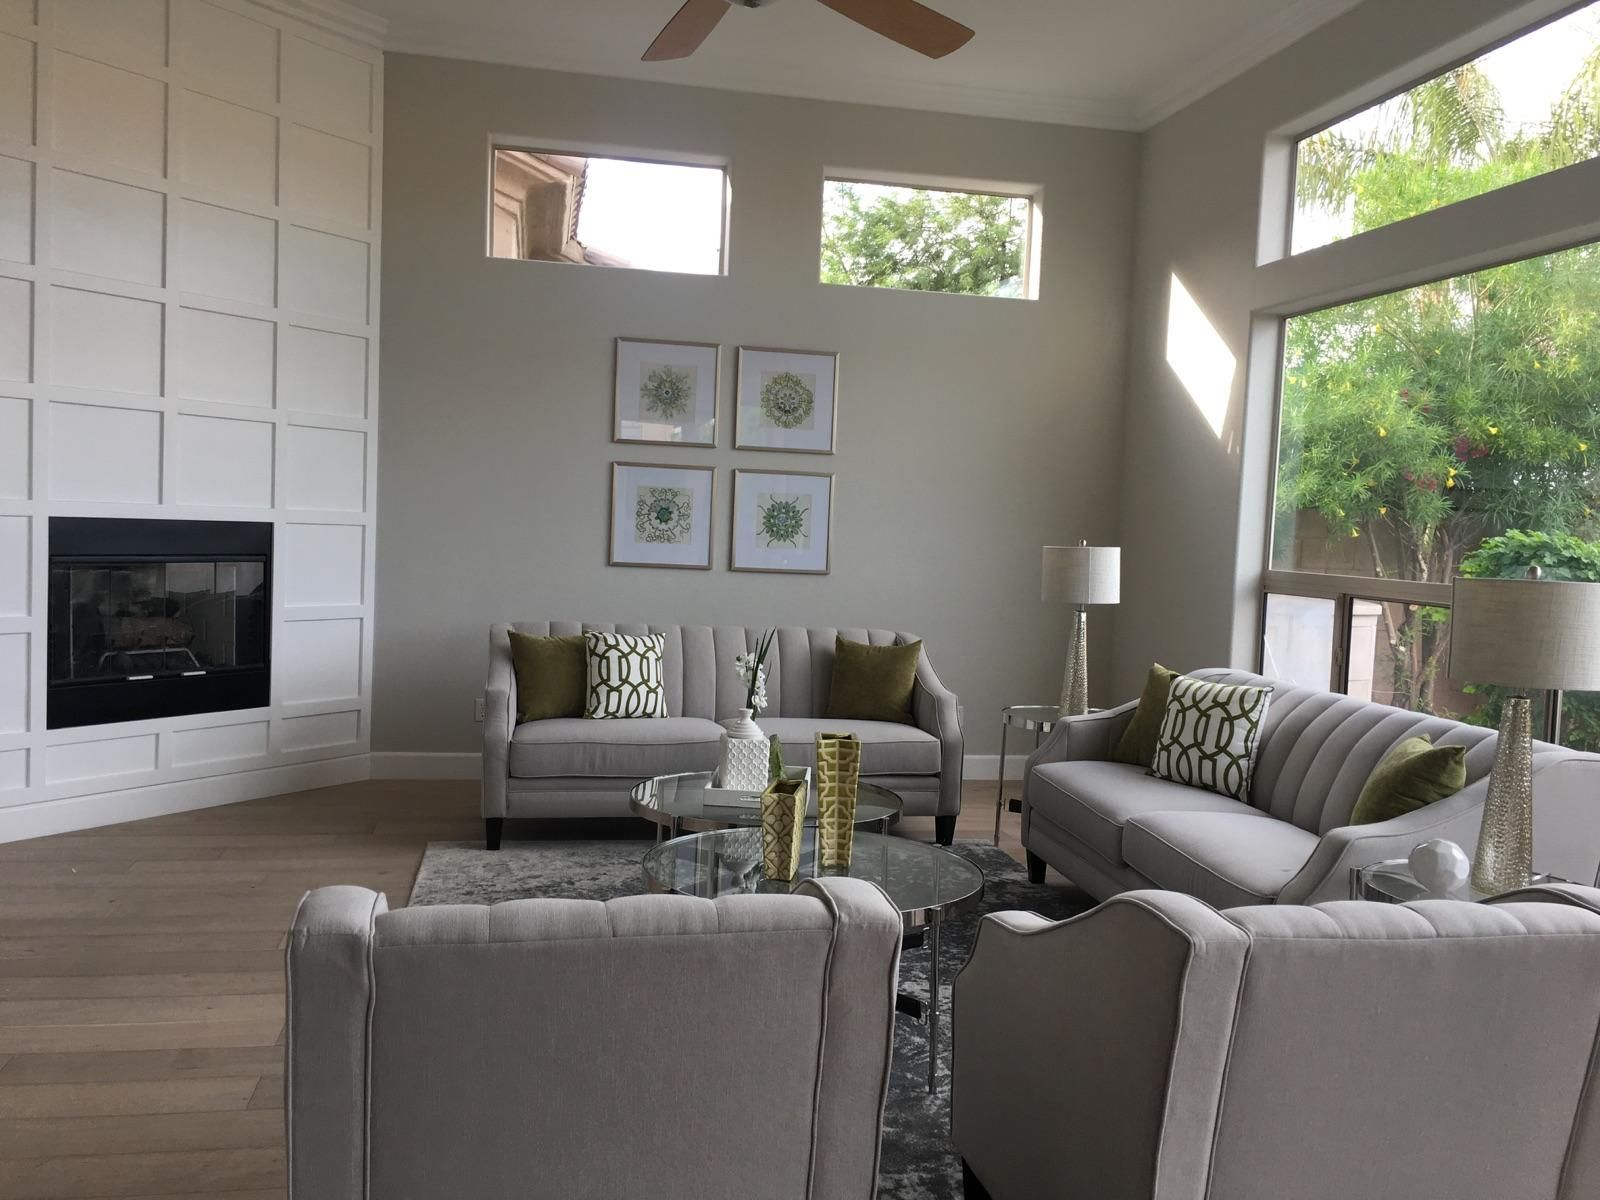 Genial  Casual Elegance Is The Direction Of This Staged Property.